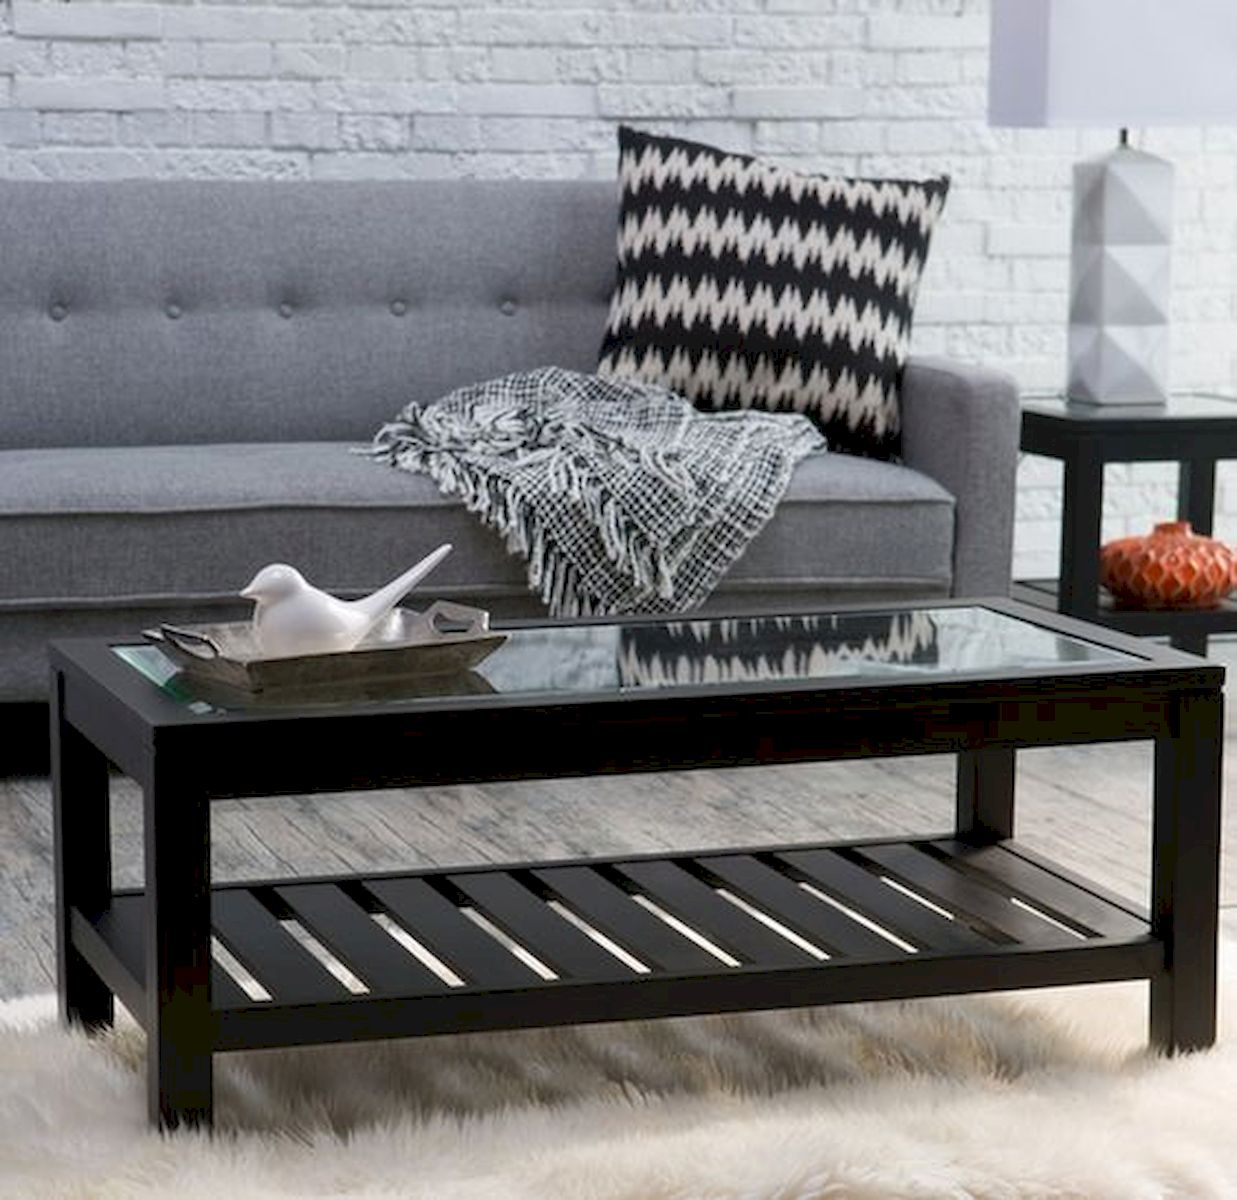 40 Awesome Modern Glass Coffee Table Design Ideas For Your Living Room (15)